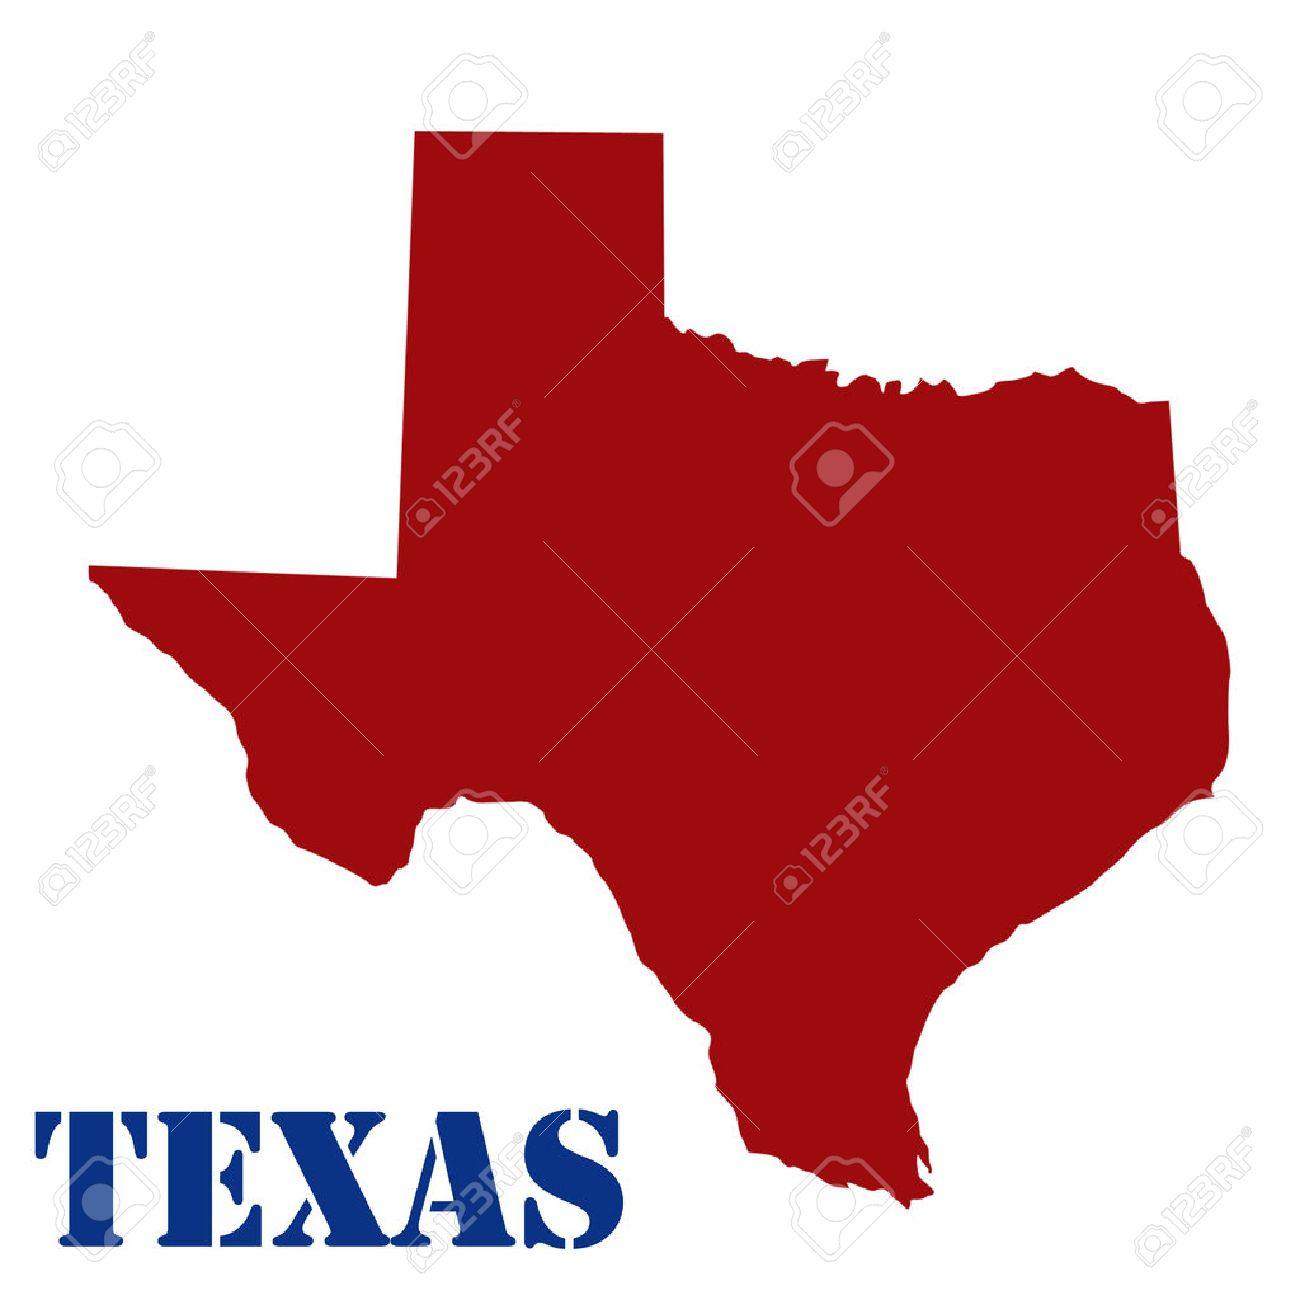 1300x1300 Map Of Texas On White Background, Vector Illustration Royalty Free